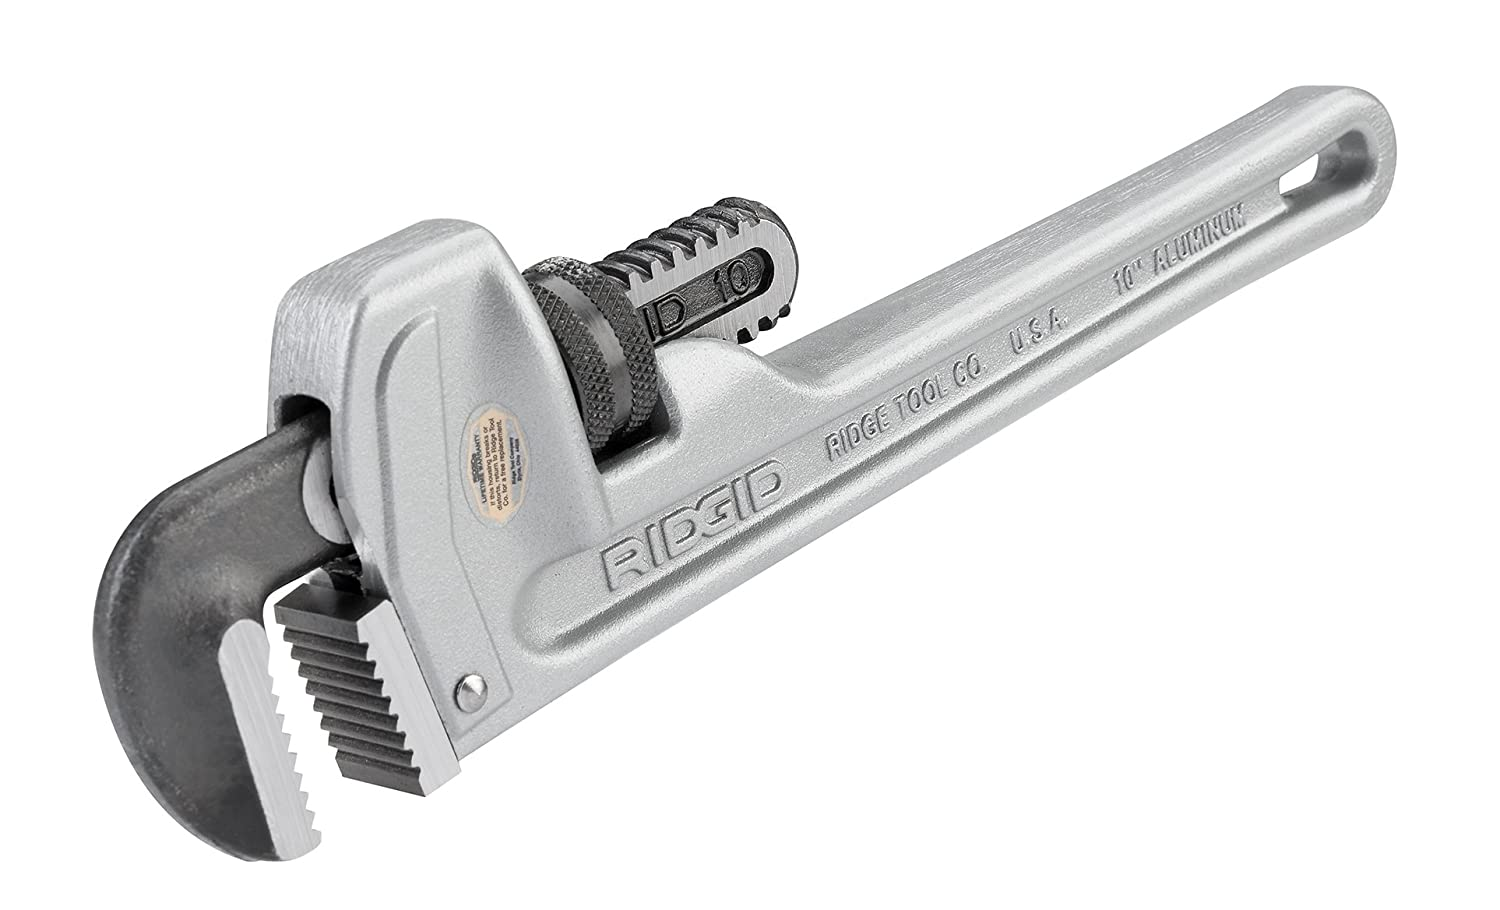 Ridgid Tools 31090 1-1/2-Inch Aluminum Straight Pipe Wrench